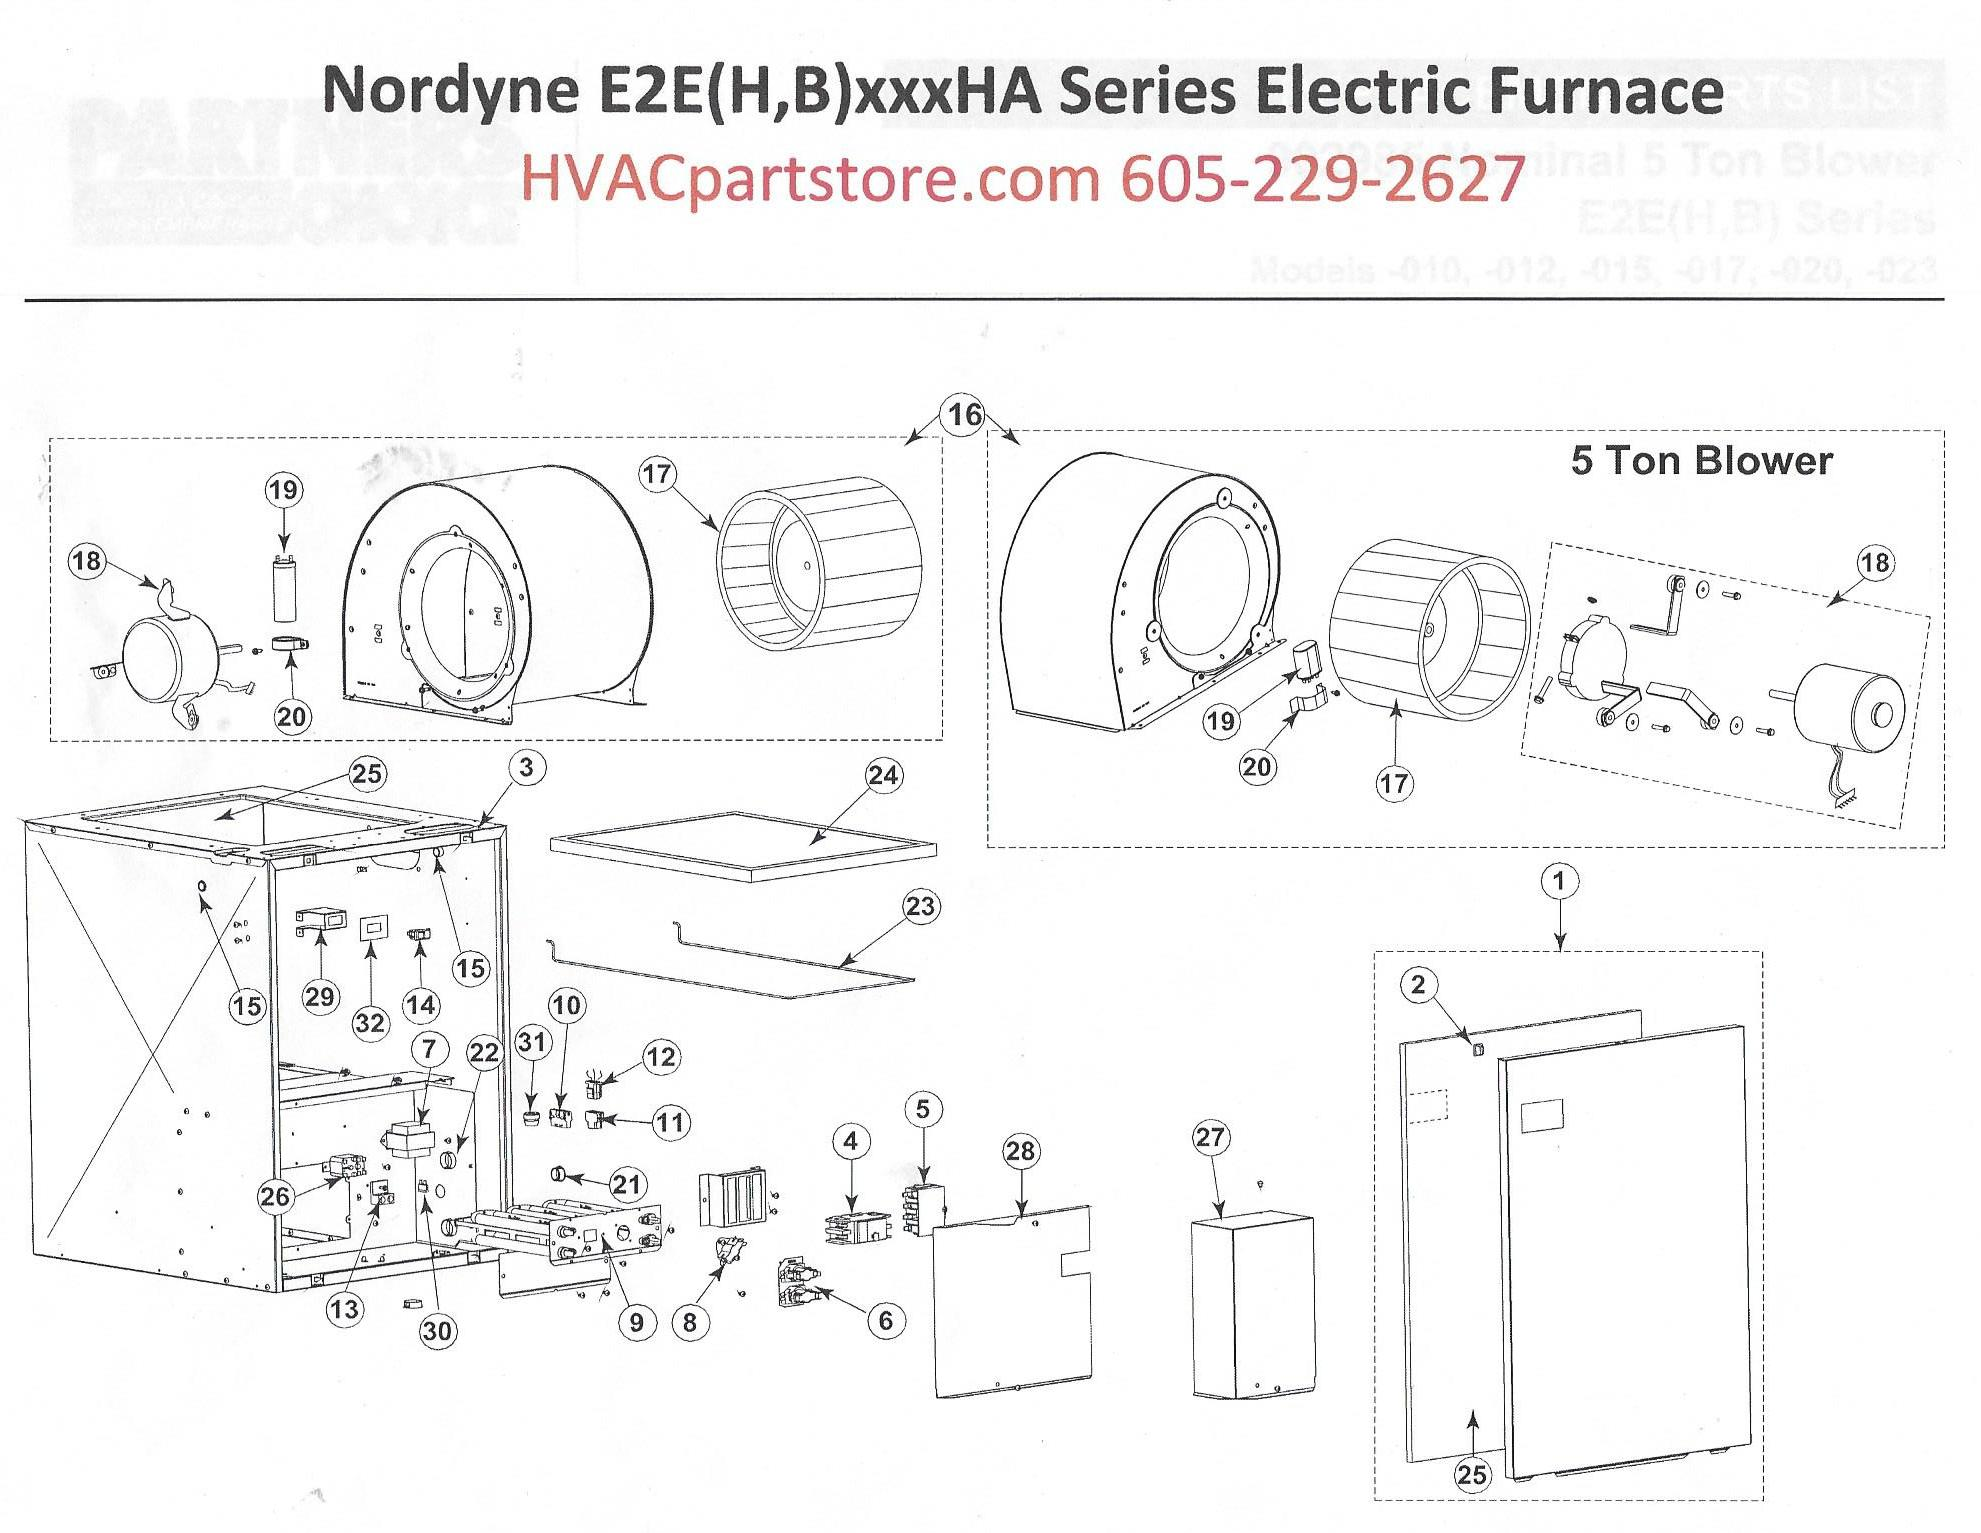 E2eb015hb Nordyne Electric Furnace Parts  U2013 Hvacpartstore